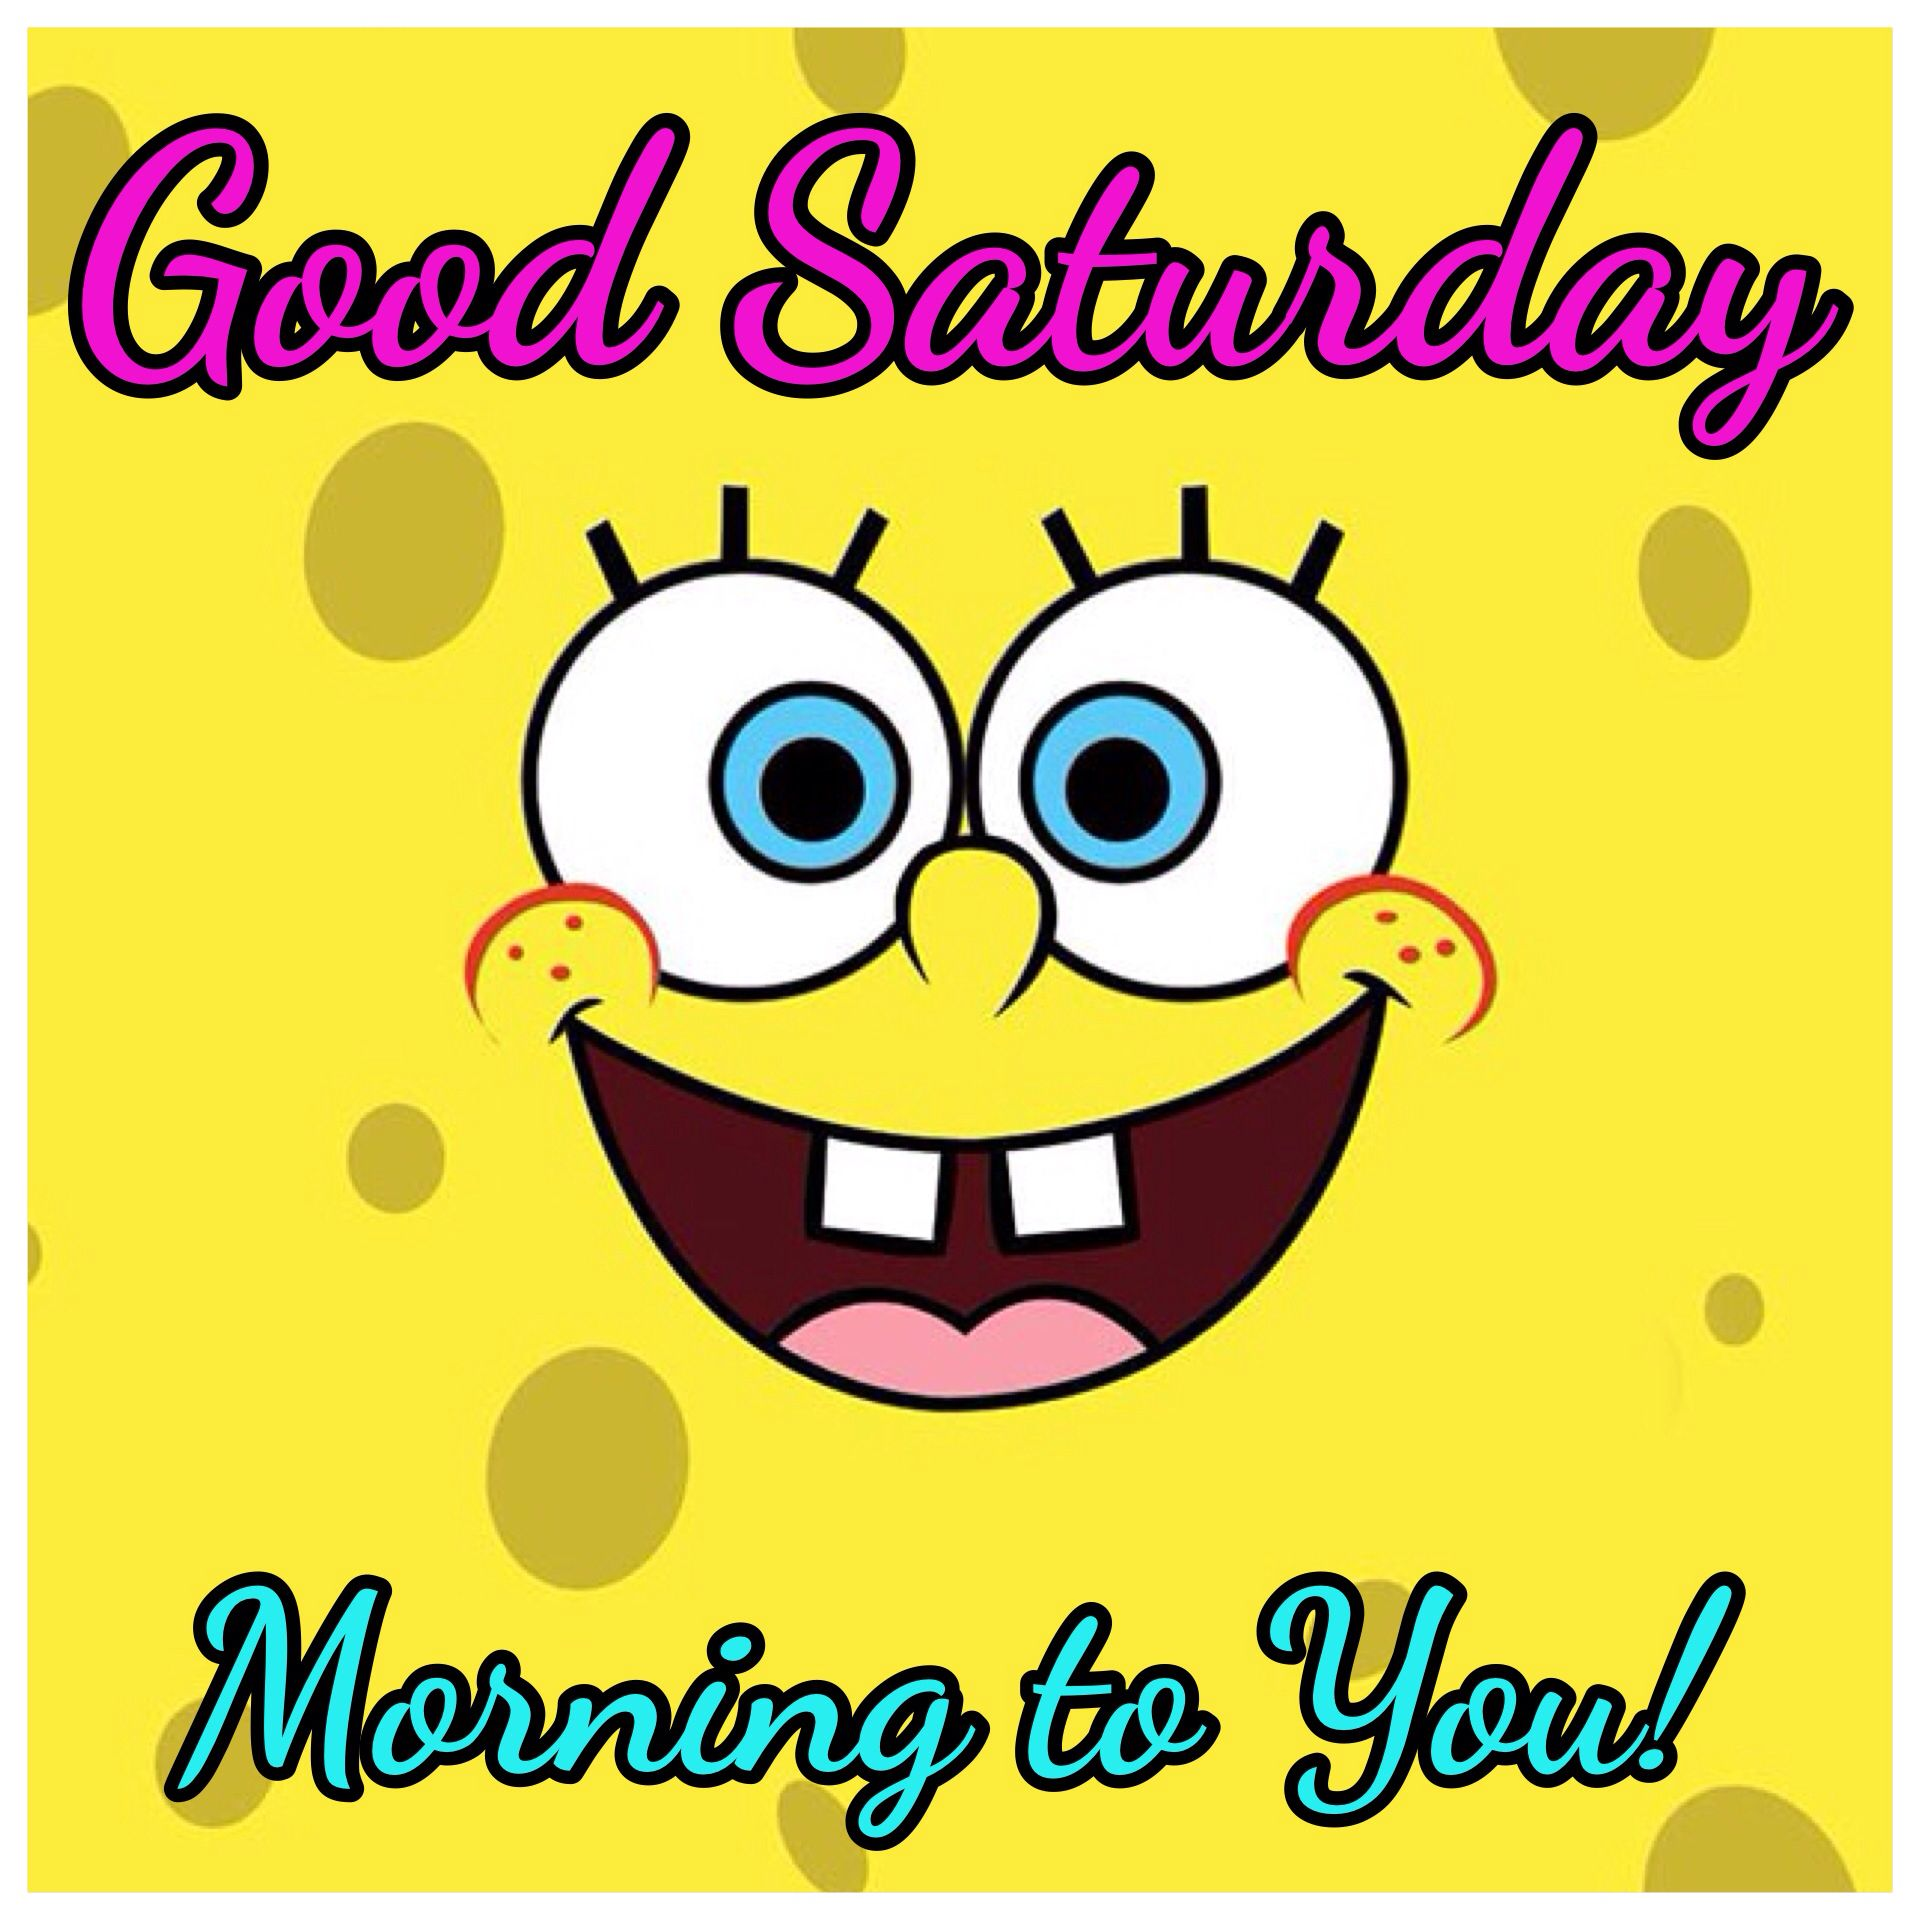 Good Saturday Morning SpongeBob Square Pants cute quotes happy